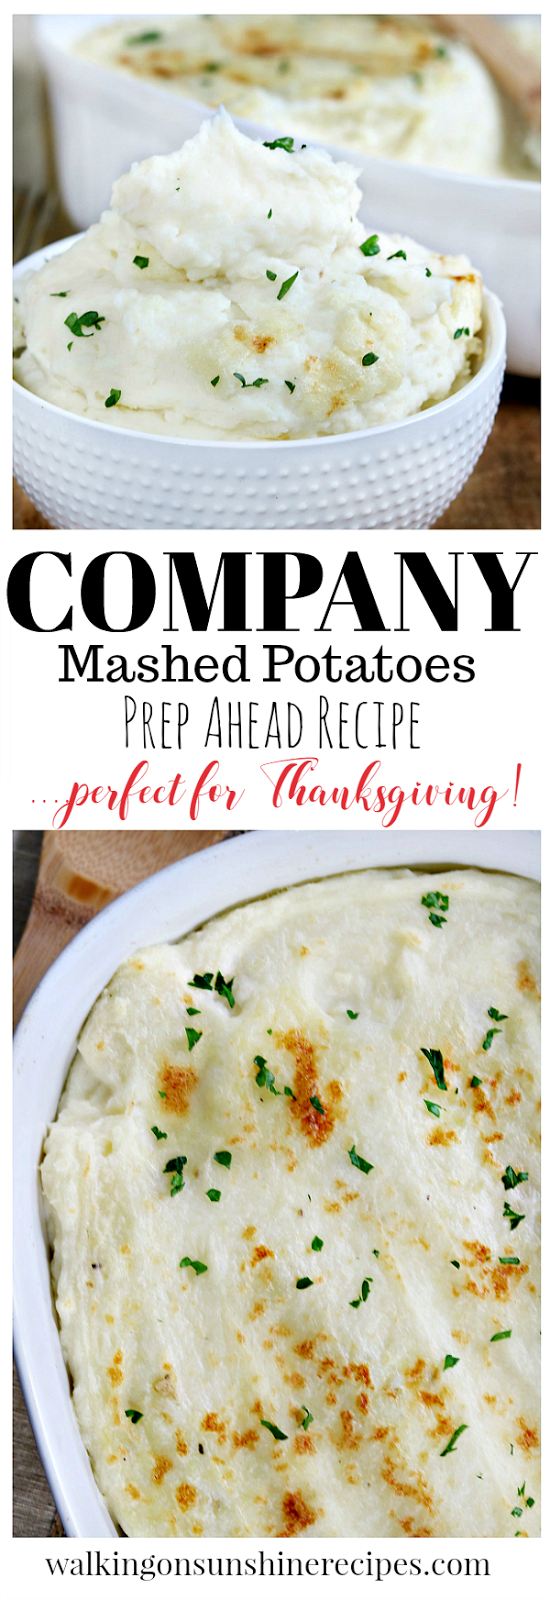 The perfect prep ahead recipe for Thanksgiving is Company Mashed Potatoes from Walking on Sunshine Recipes.